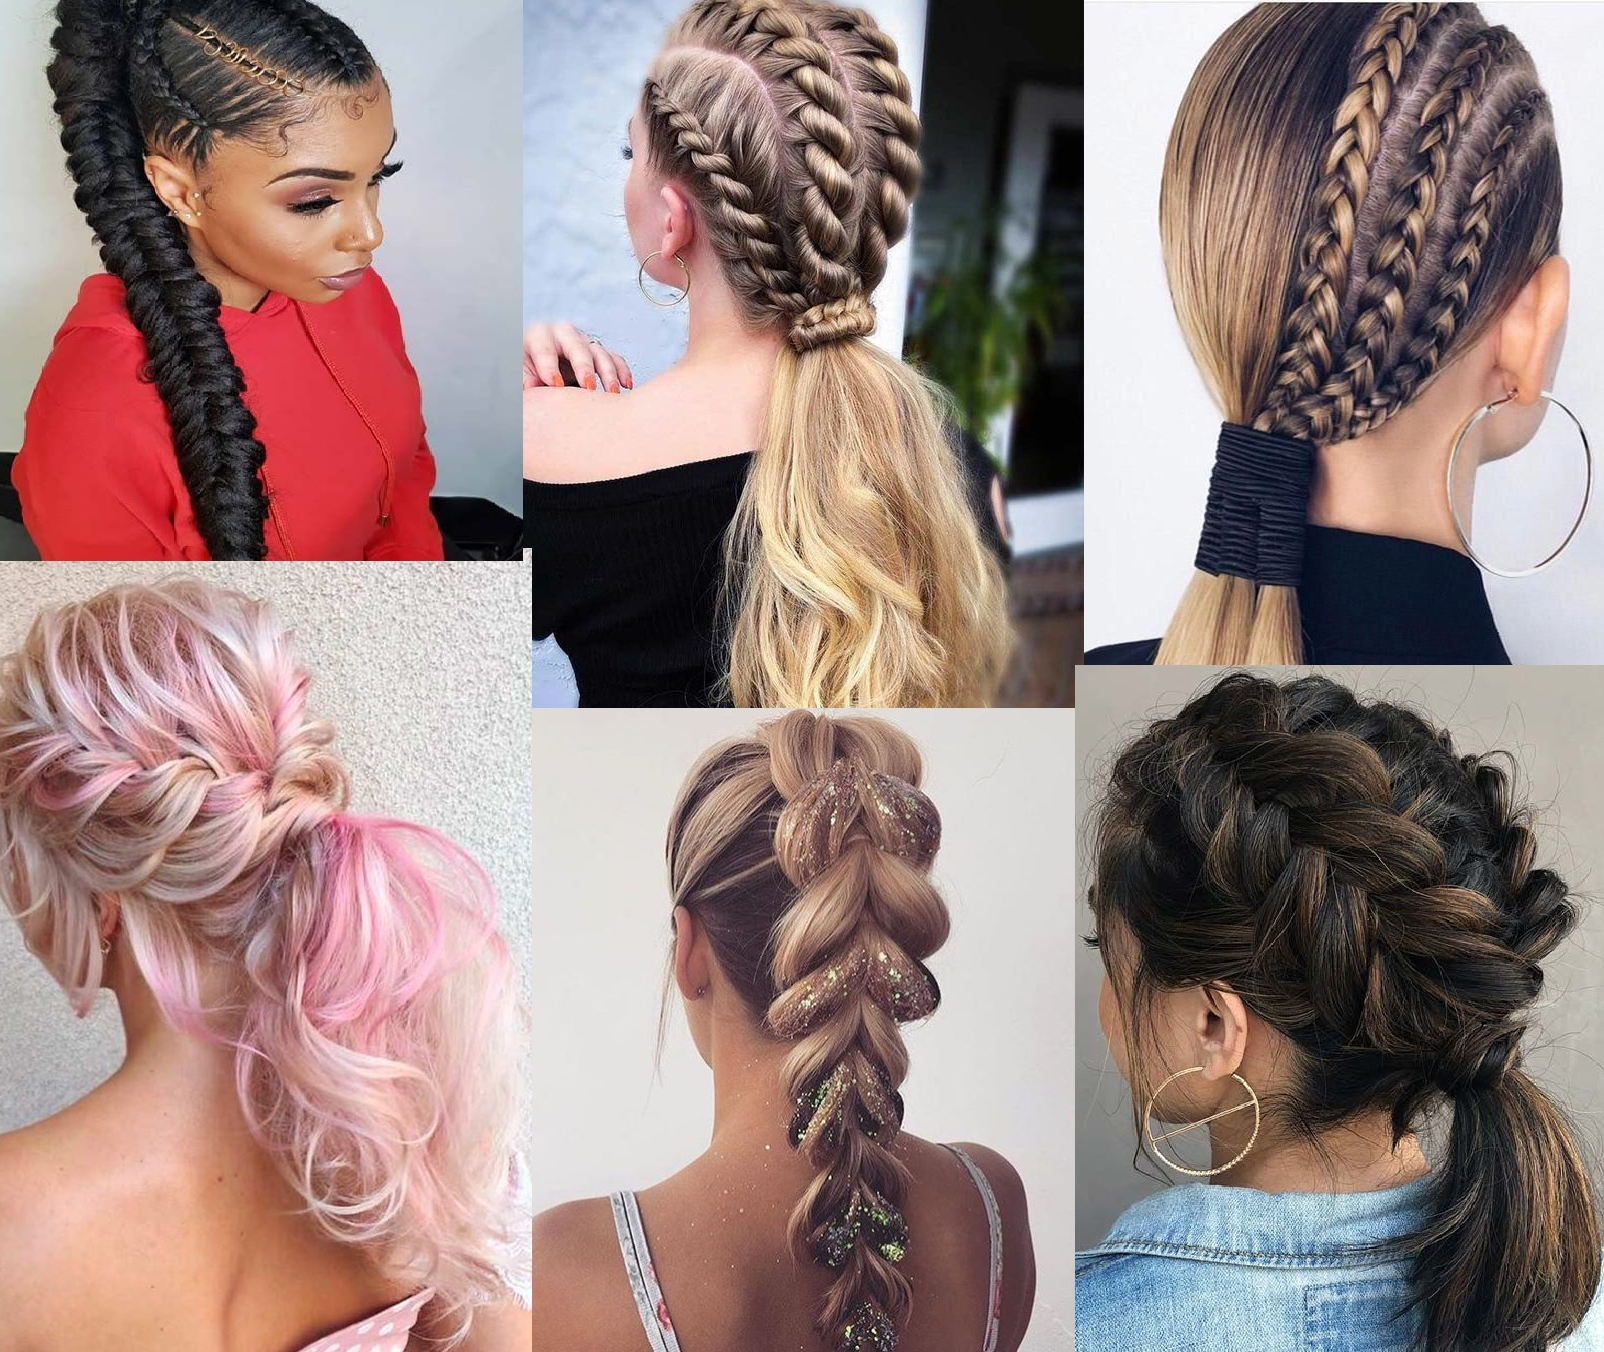 Well Known Ponytail Braid Hairstyles For Braided Ponytail Hairstyles You Must Try! (View 20 of 20)